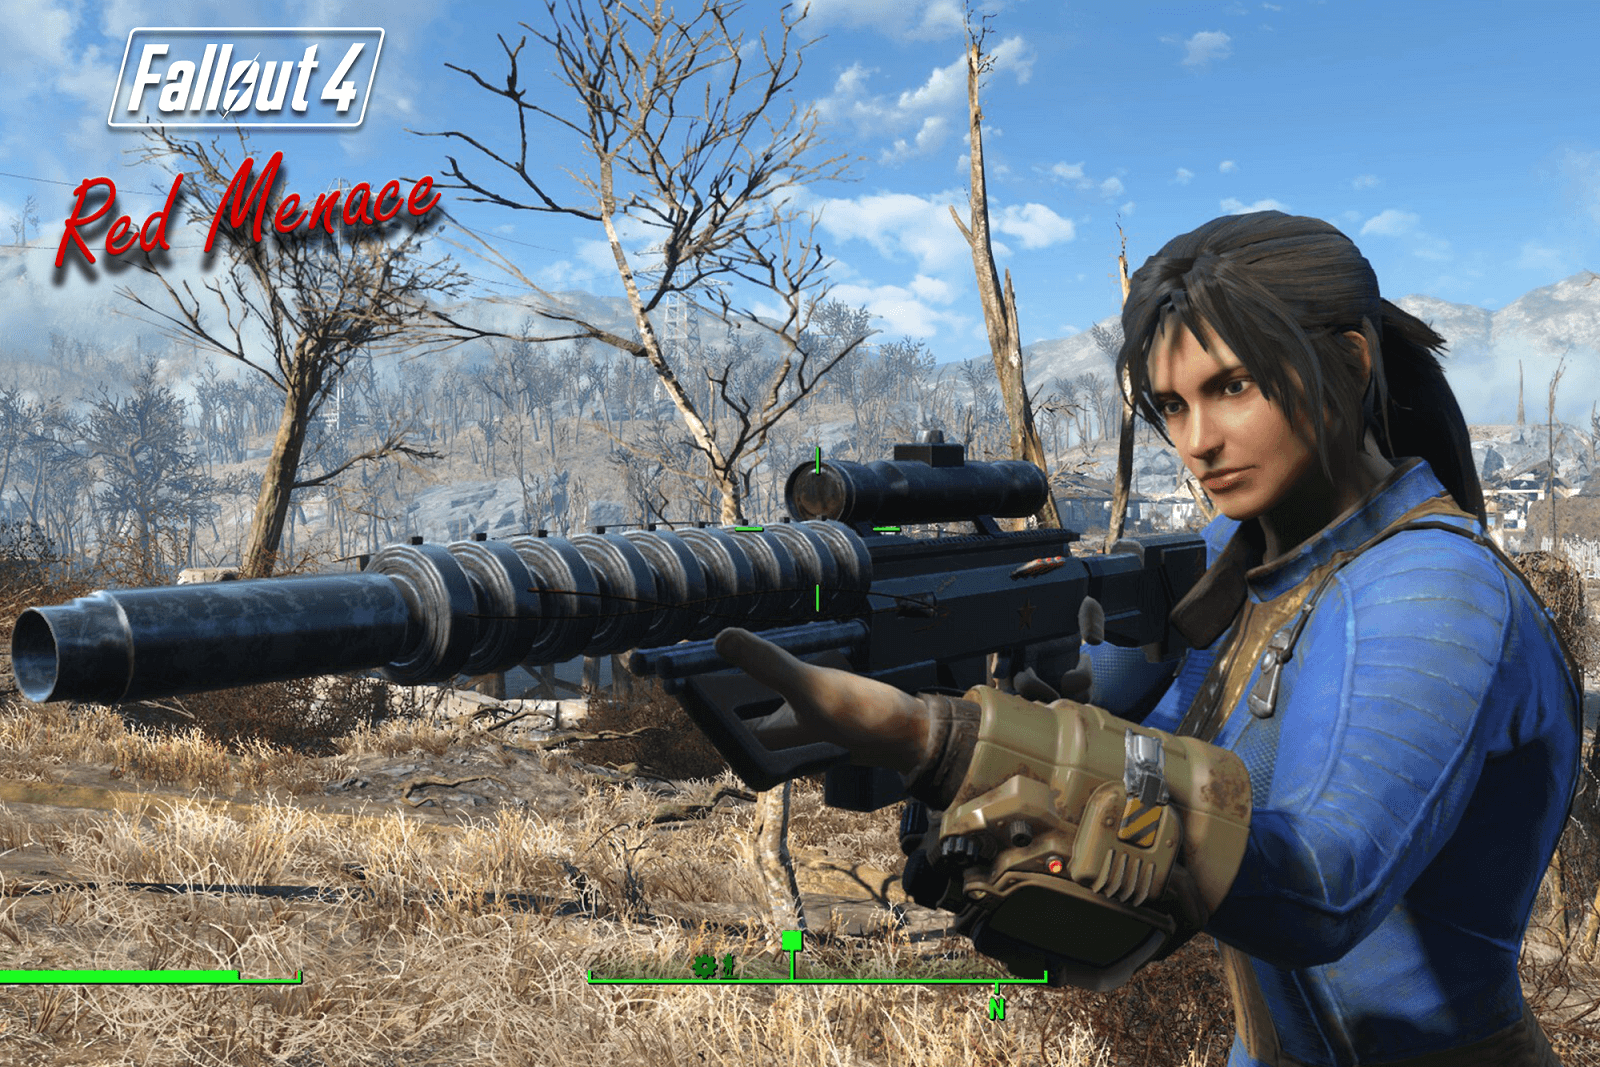 Harrison Reeves Fallout 4 mod image